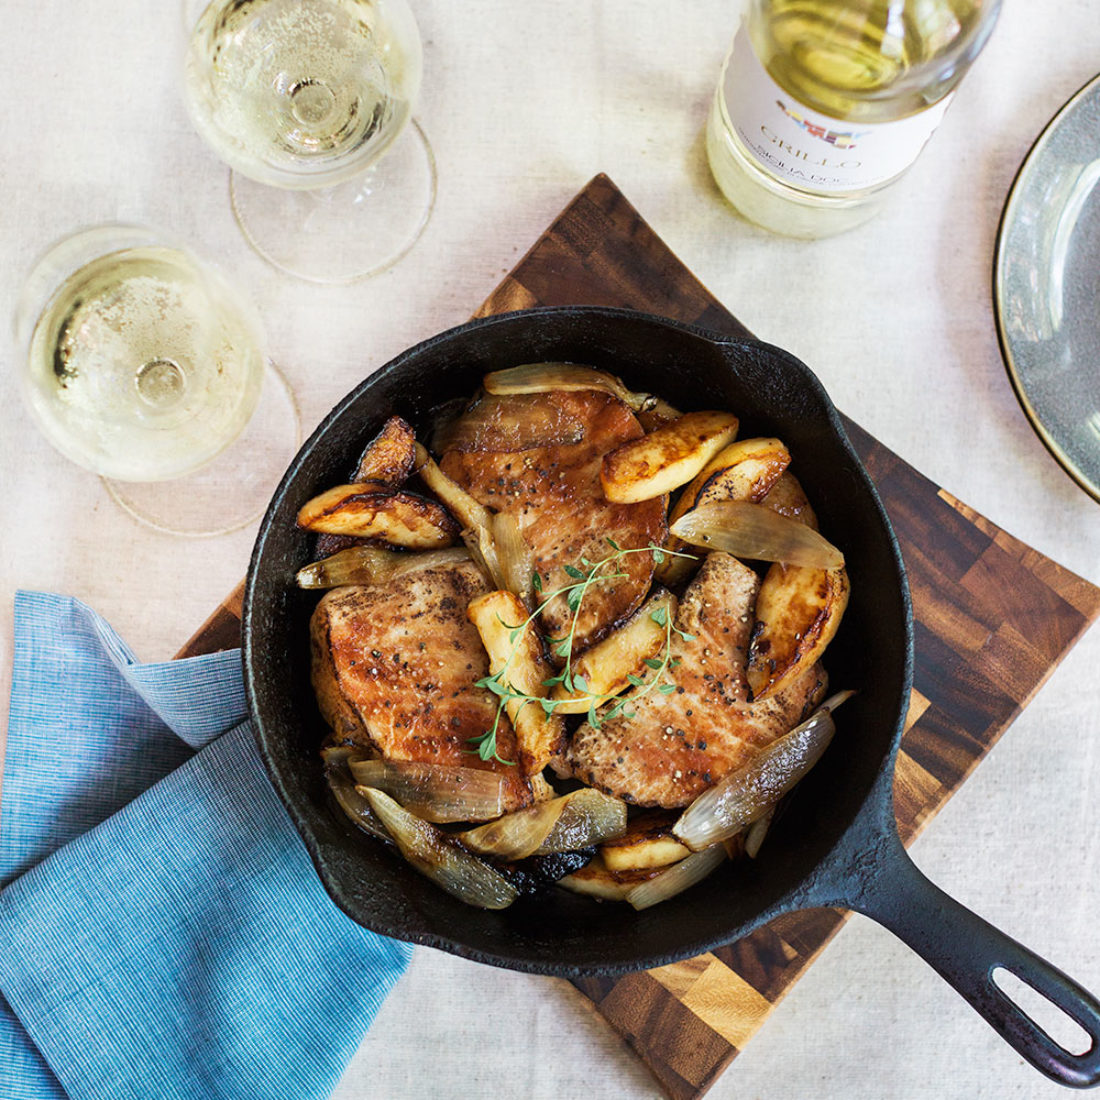 Pan Roasted Pork Chops with Apples and Onions